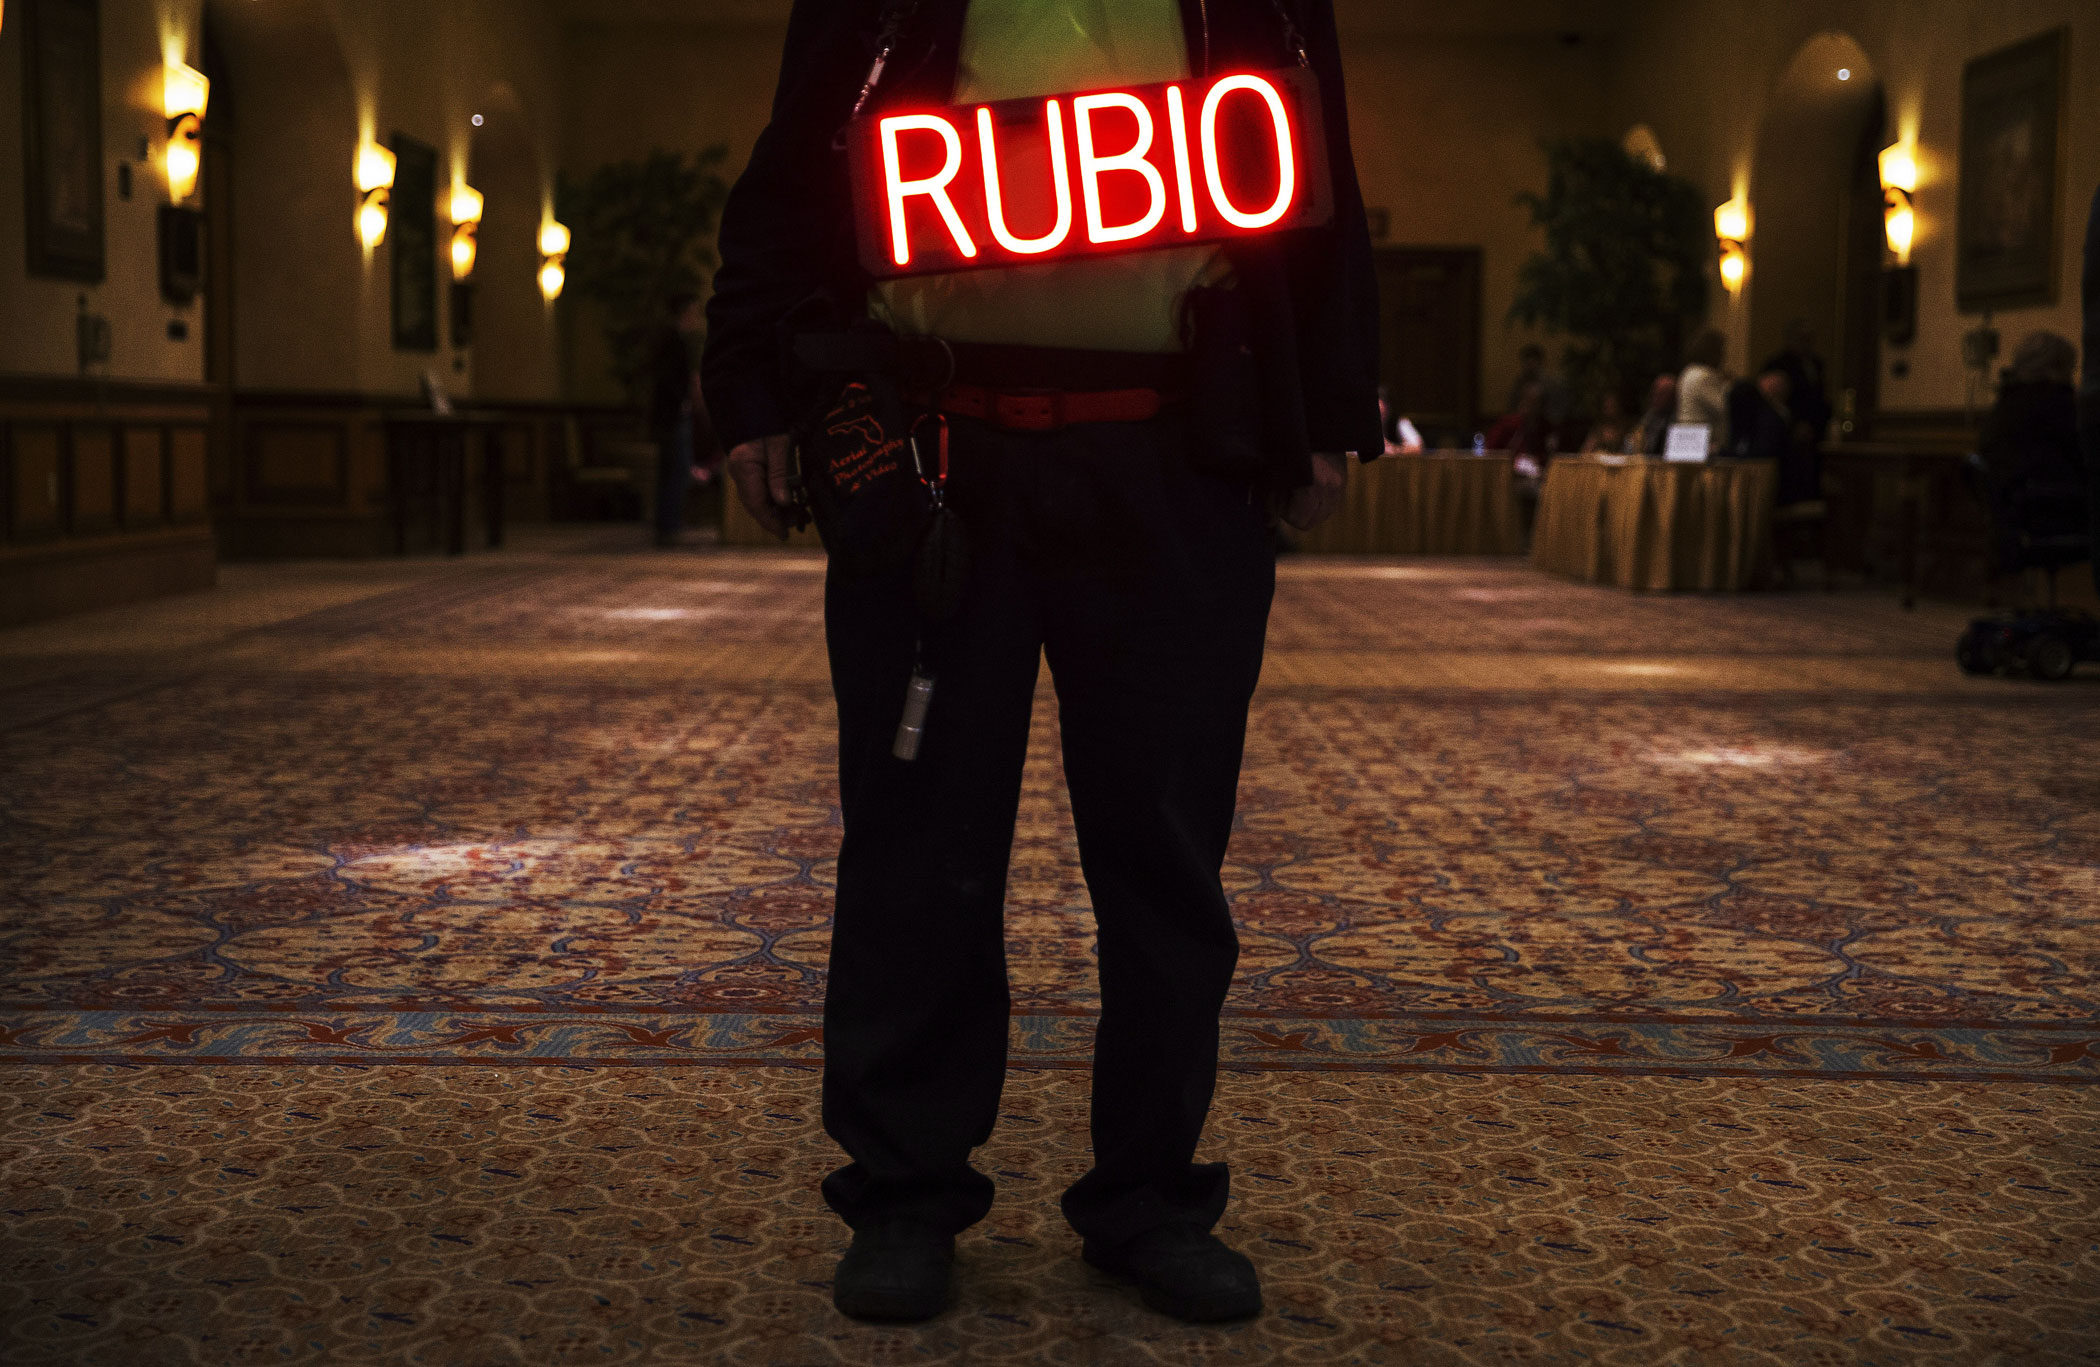 A supporter wears a sign at a rally for Republican presidential candidate Marco Rubio at Texas Station in North Las Vegas on Feb. 21, 2016.